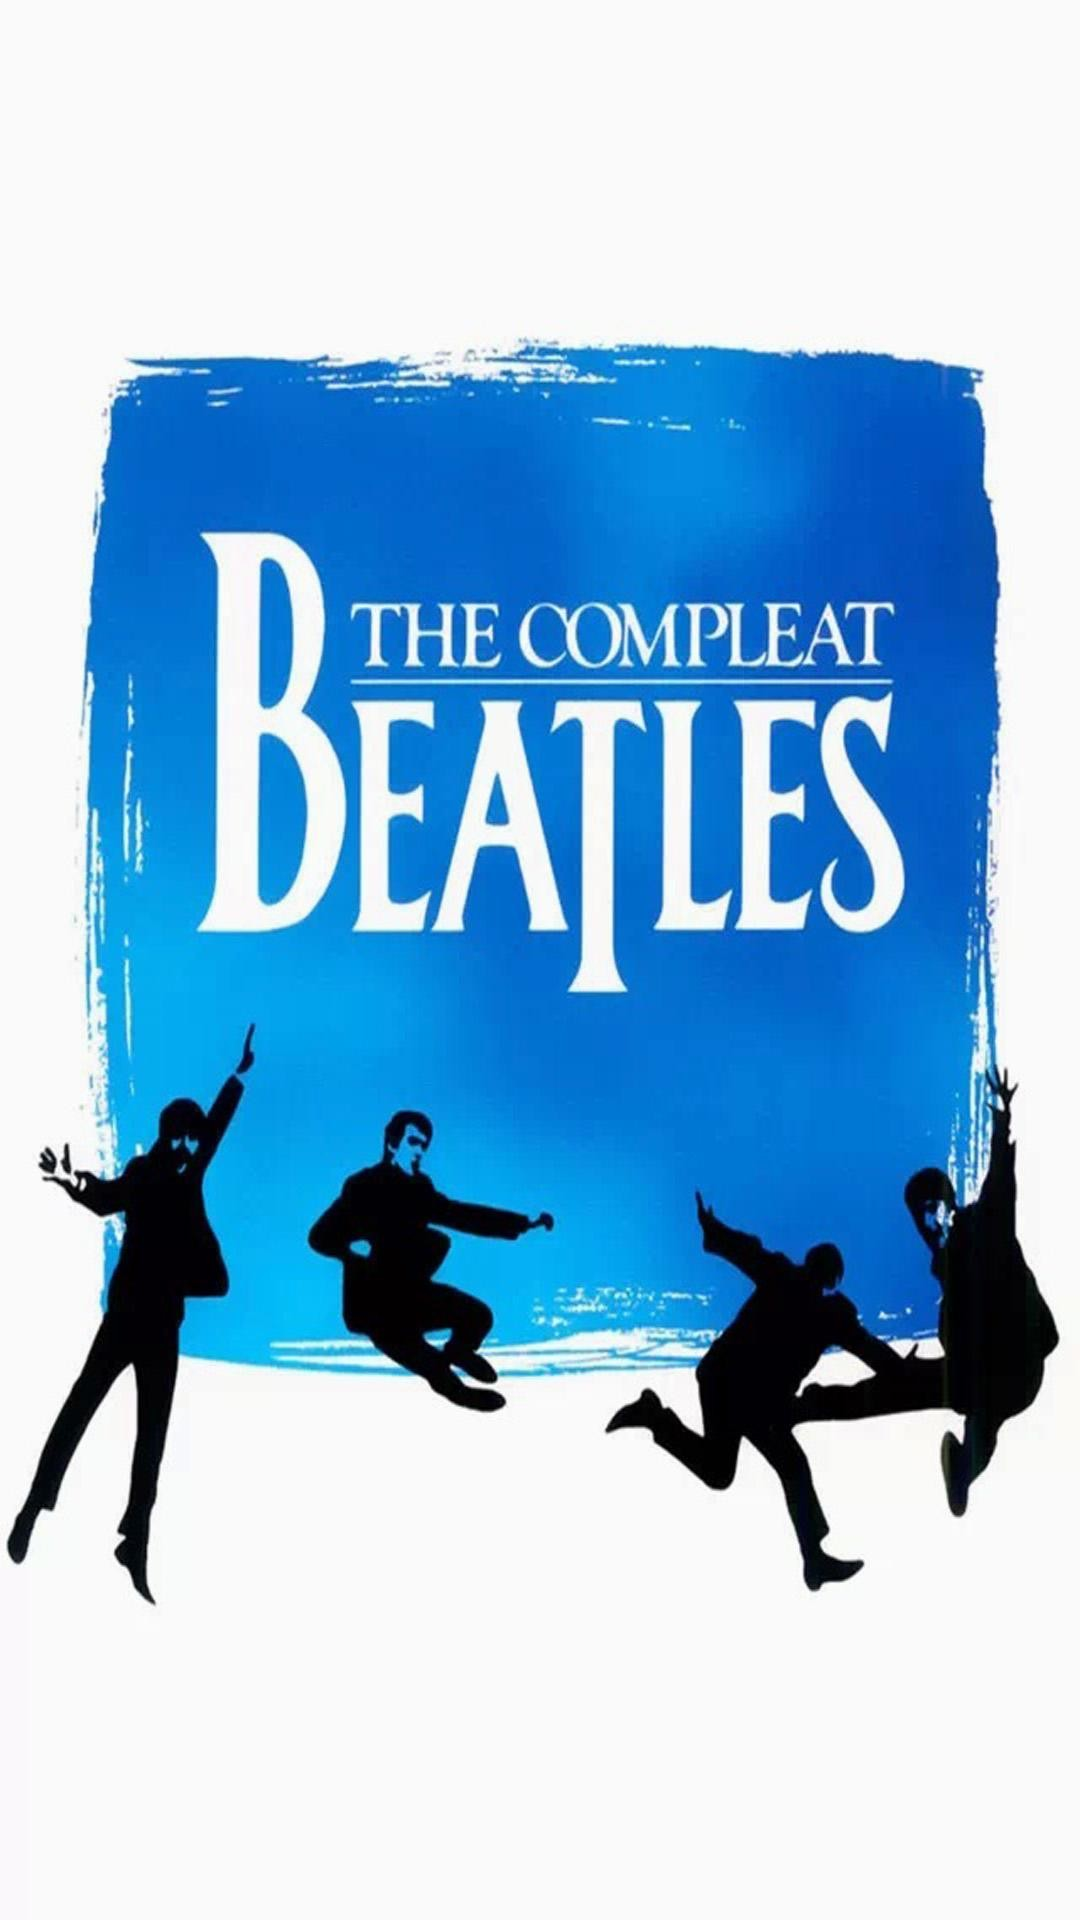 1080x1920 The Beatles Wallpaper Iphone Images)